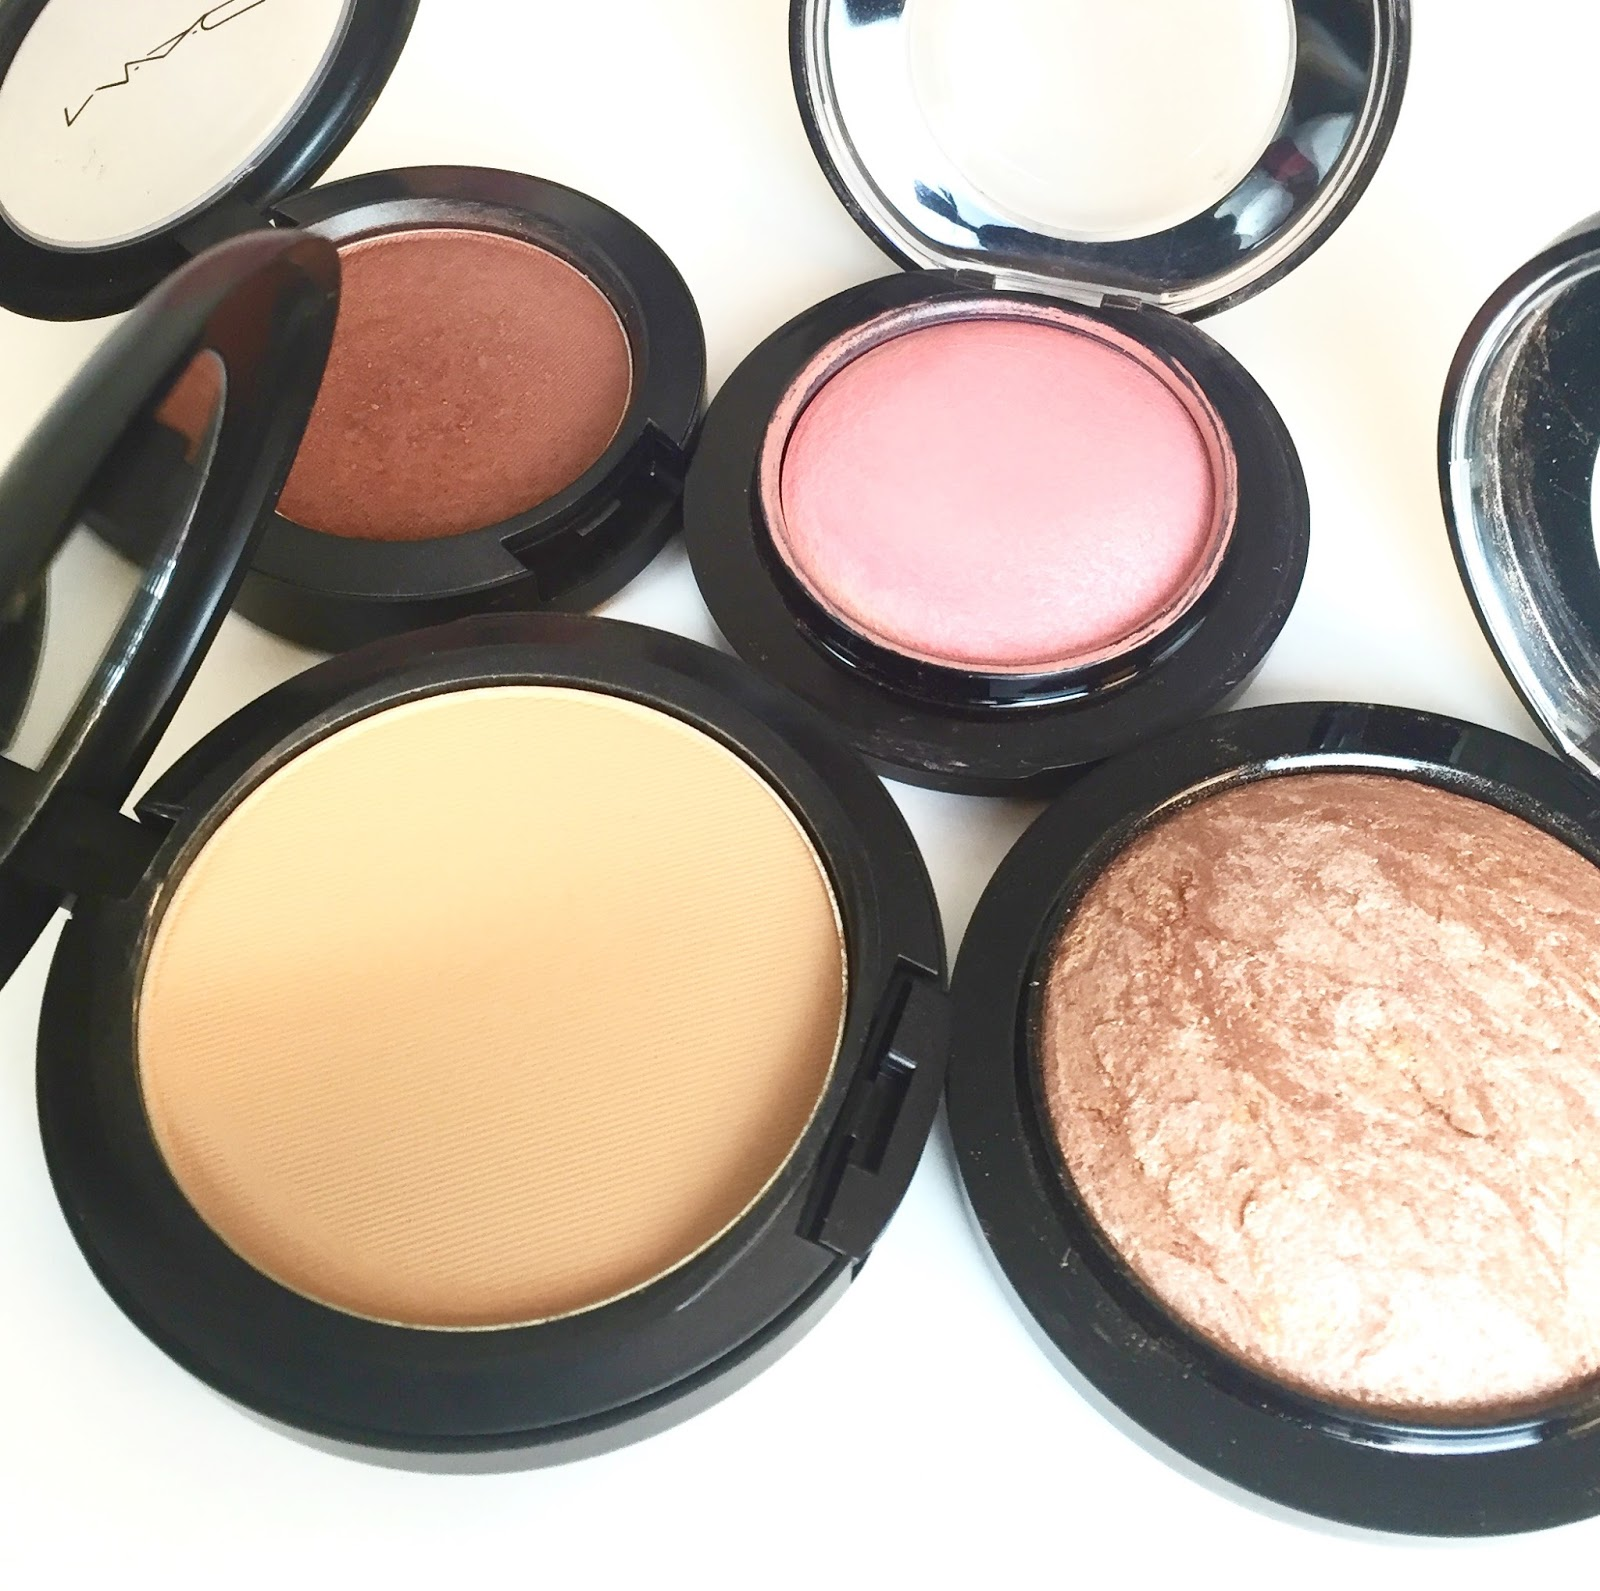 So to set my foundation, I use the Mac Studio Fix Powder + Foundation, this is in the shade NC43. This powder has full coverage and leaves me with a smooth ...